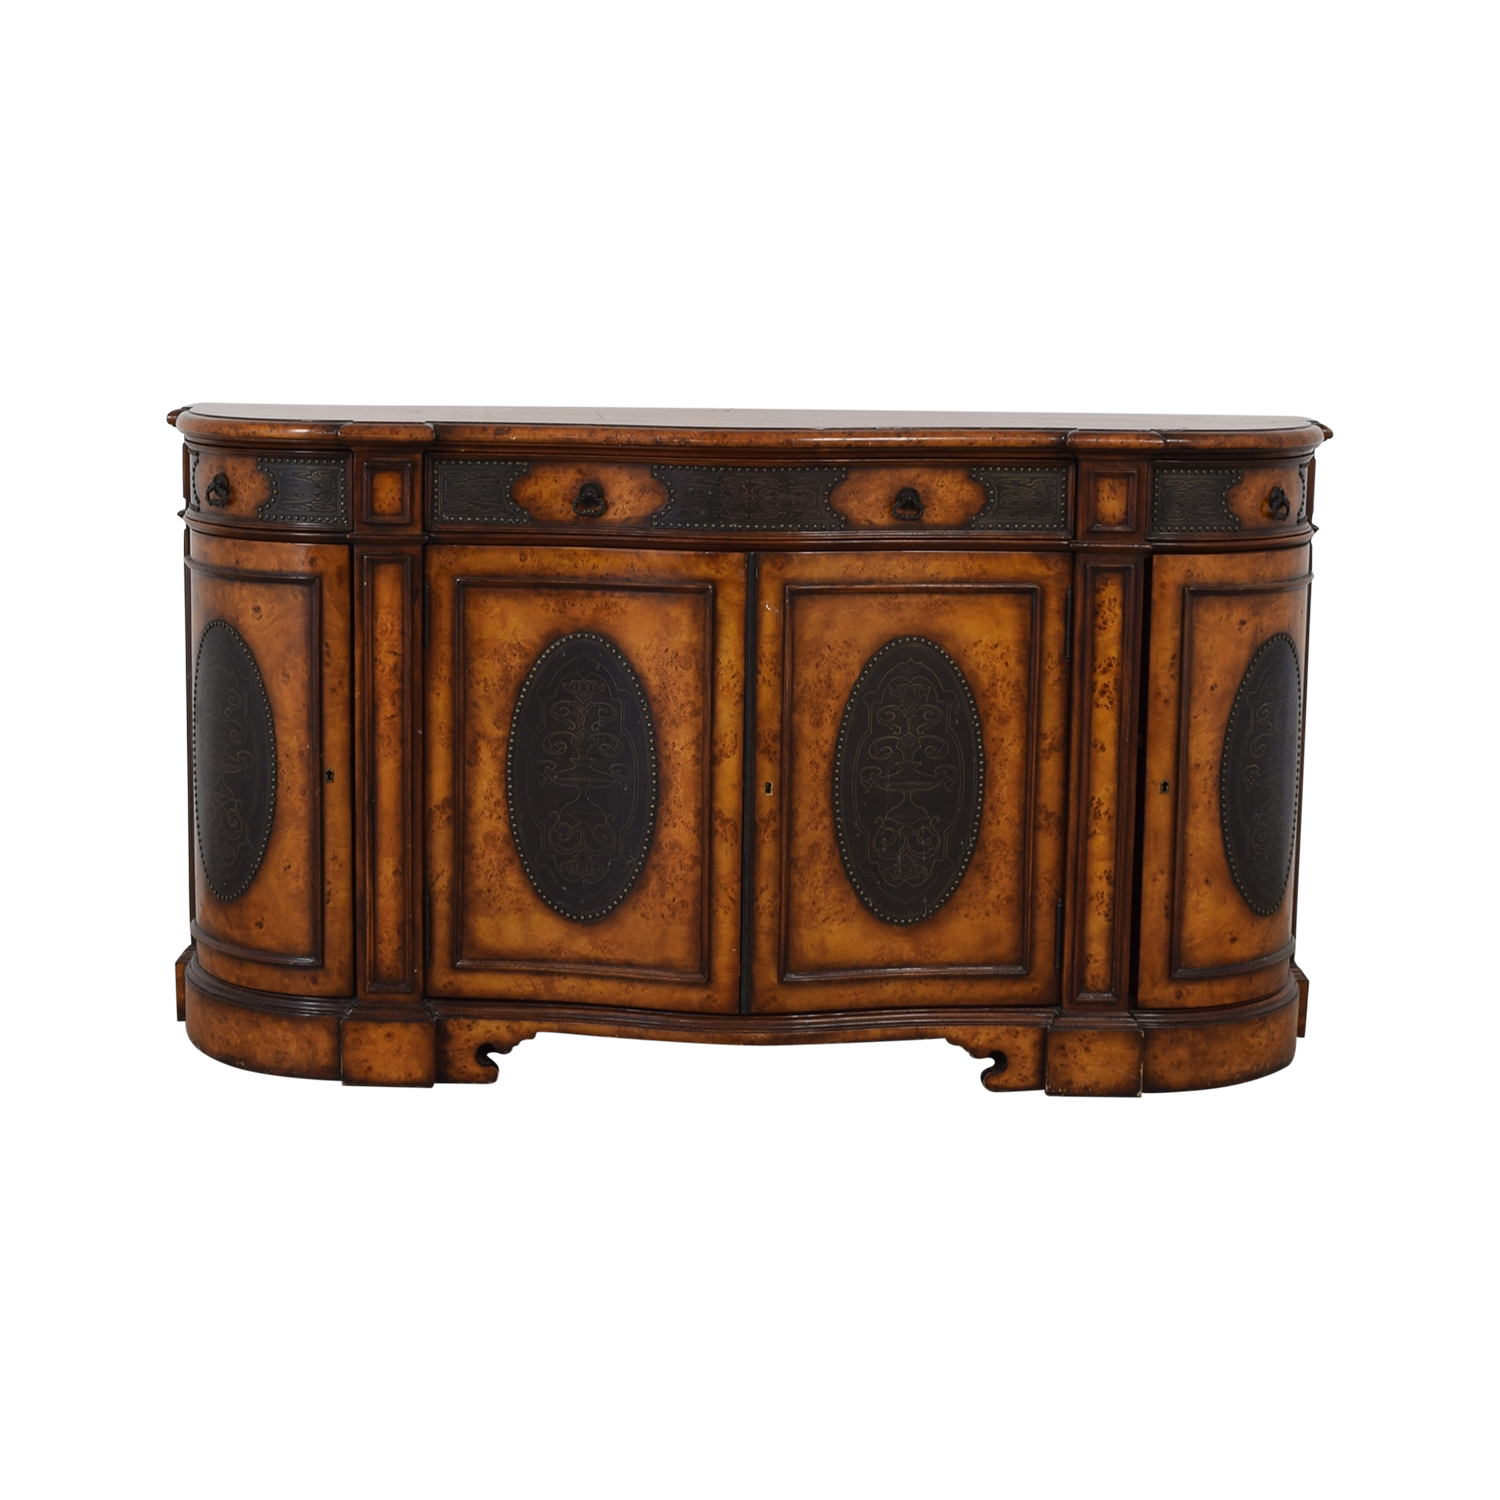 shop ABC Carpet & Home ABC Carpet & Home Theodore Alexander Sideboard Buffet online